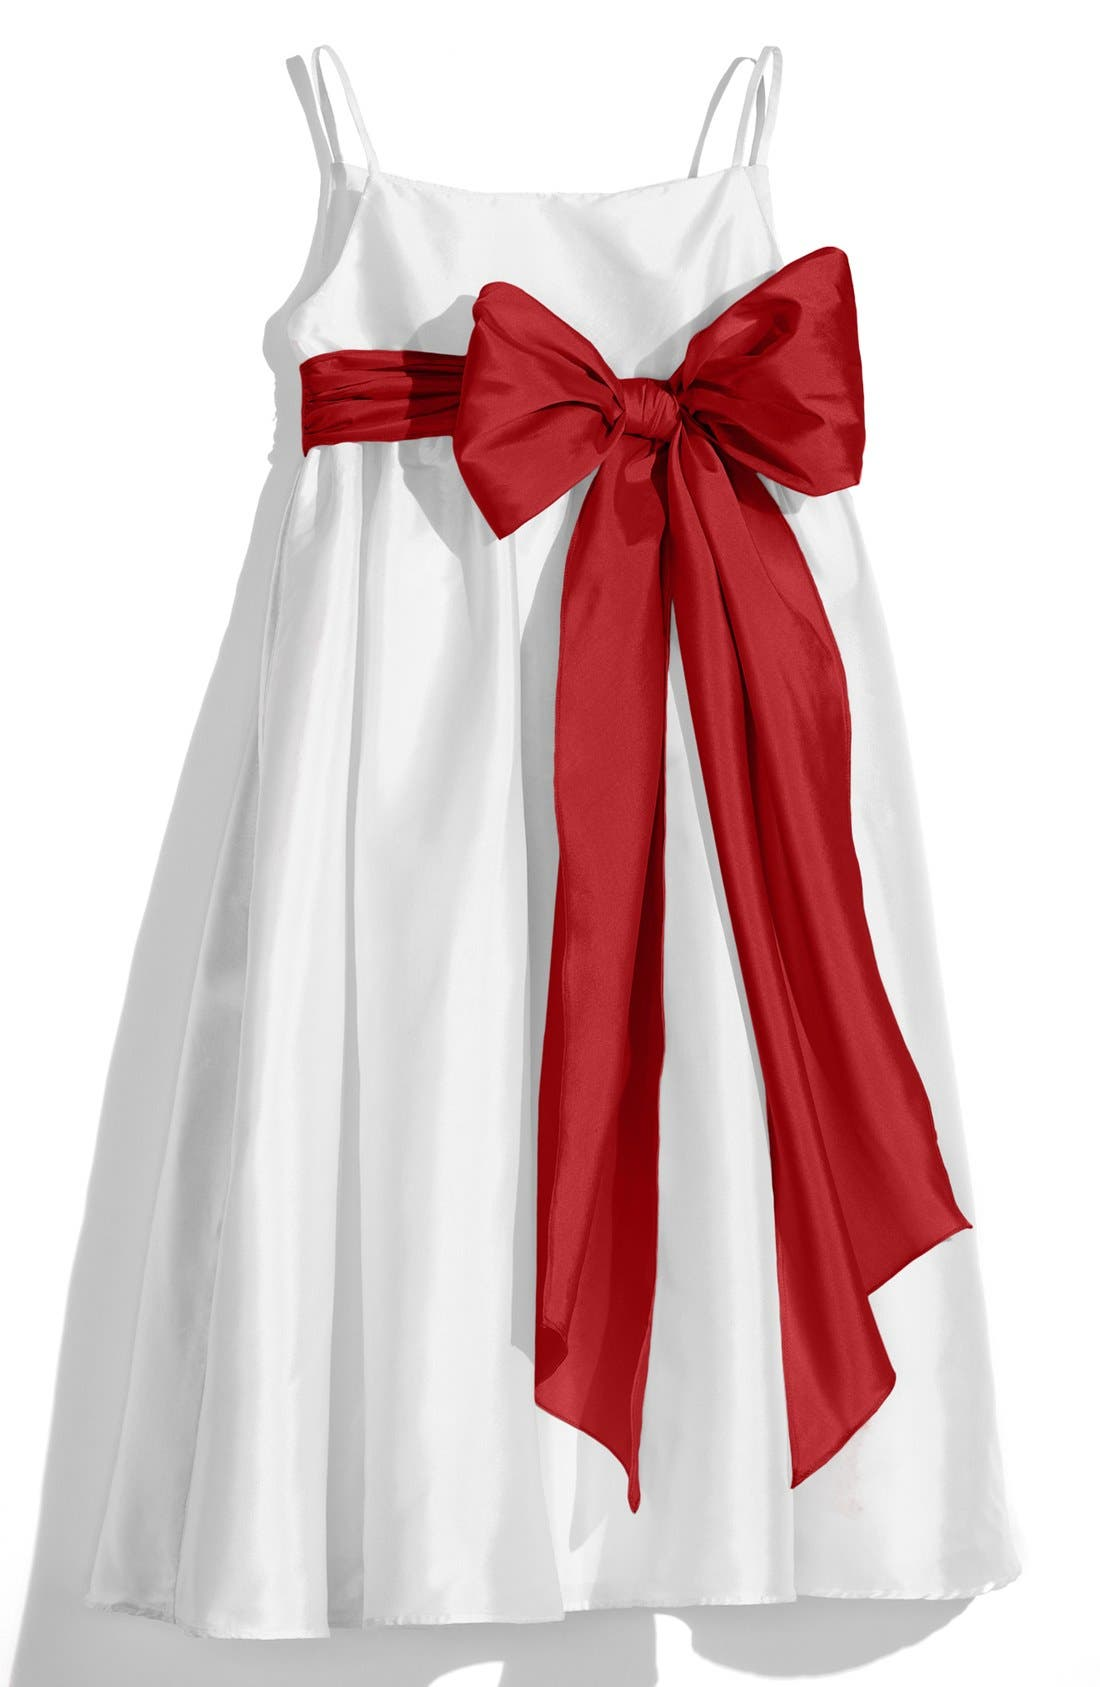 Alternate Image 1 Selected - Us Angels White Sleeveless Empire Waist Taffeta Dress (Toddler, Little Girls & Big Girls)